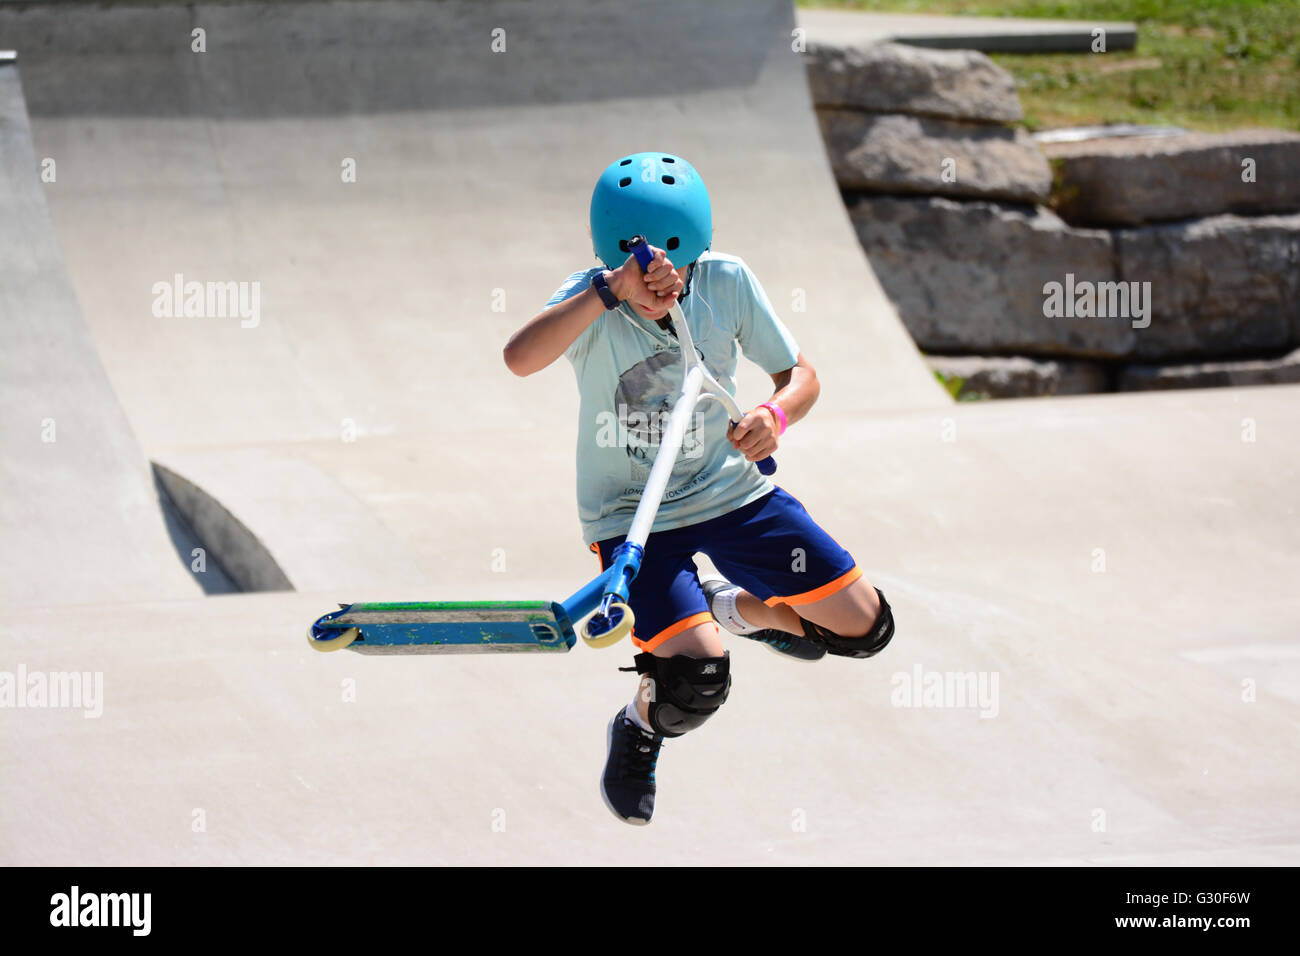 Extreme ride on scooter in skate park - Stock Image